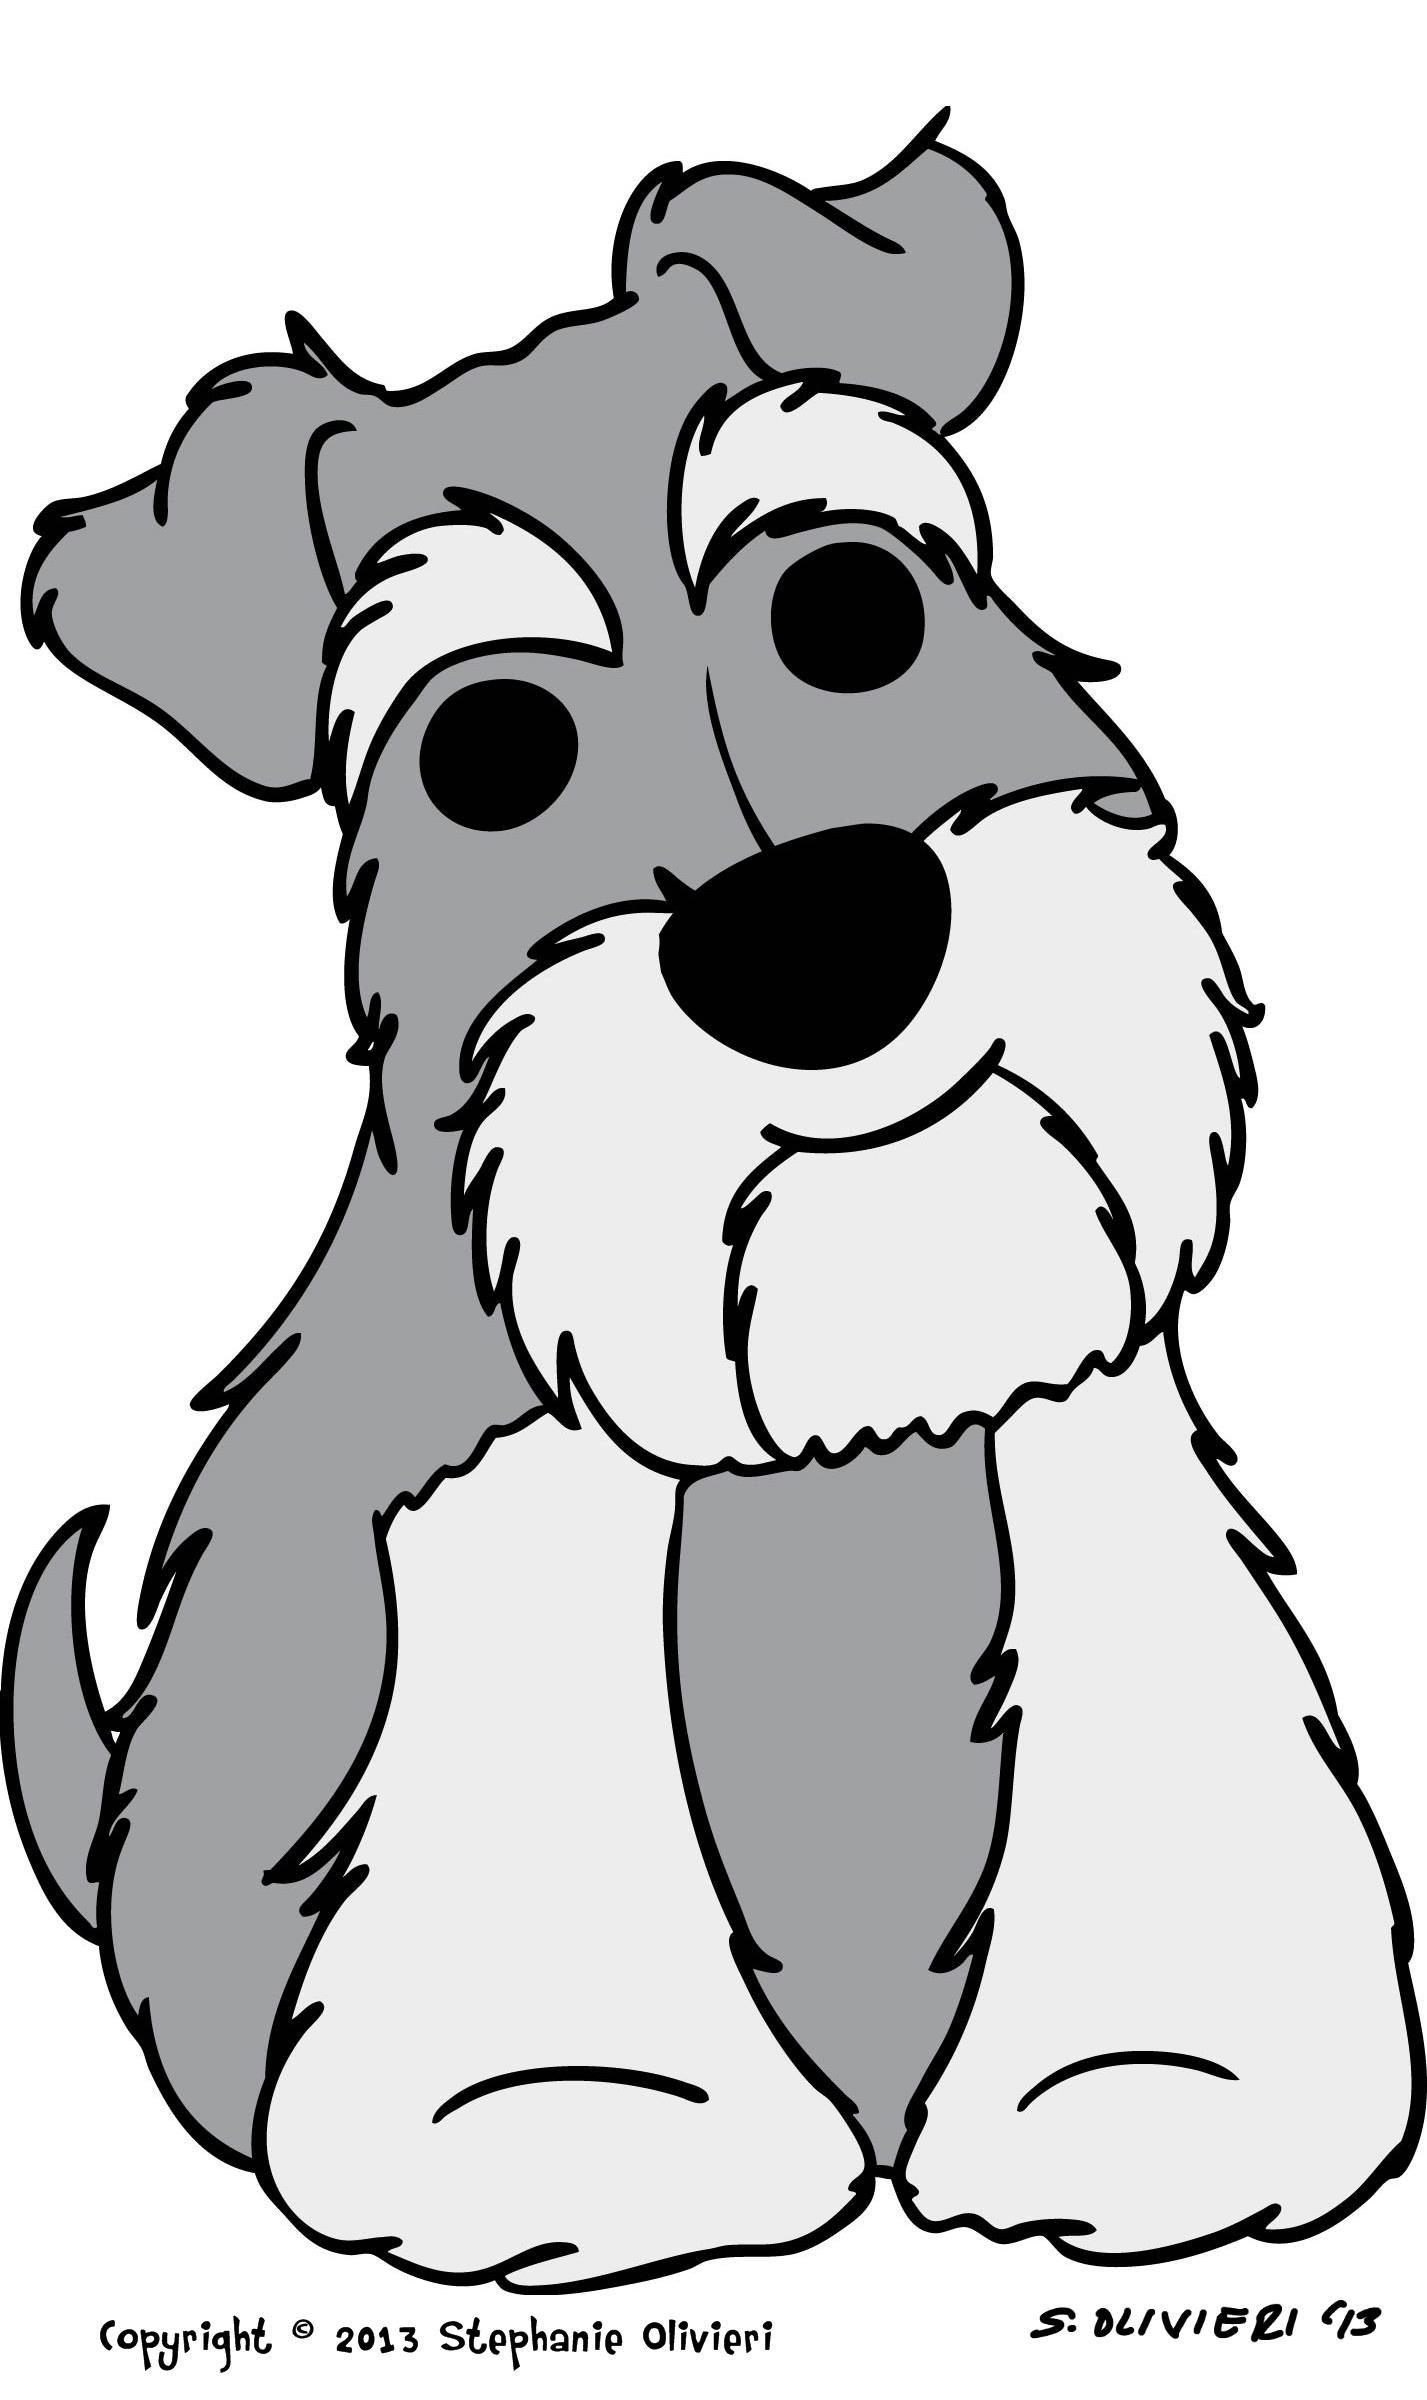 Schnauzer Coloring Pages Pictures To Pin On Pinterest Schnauzer Coloring Pages